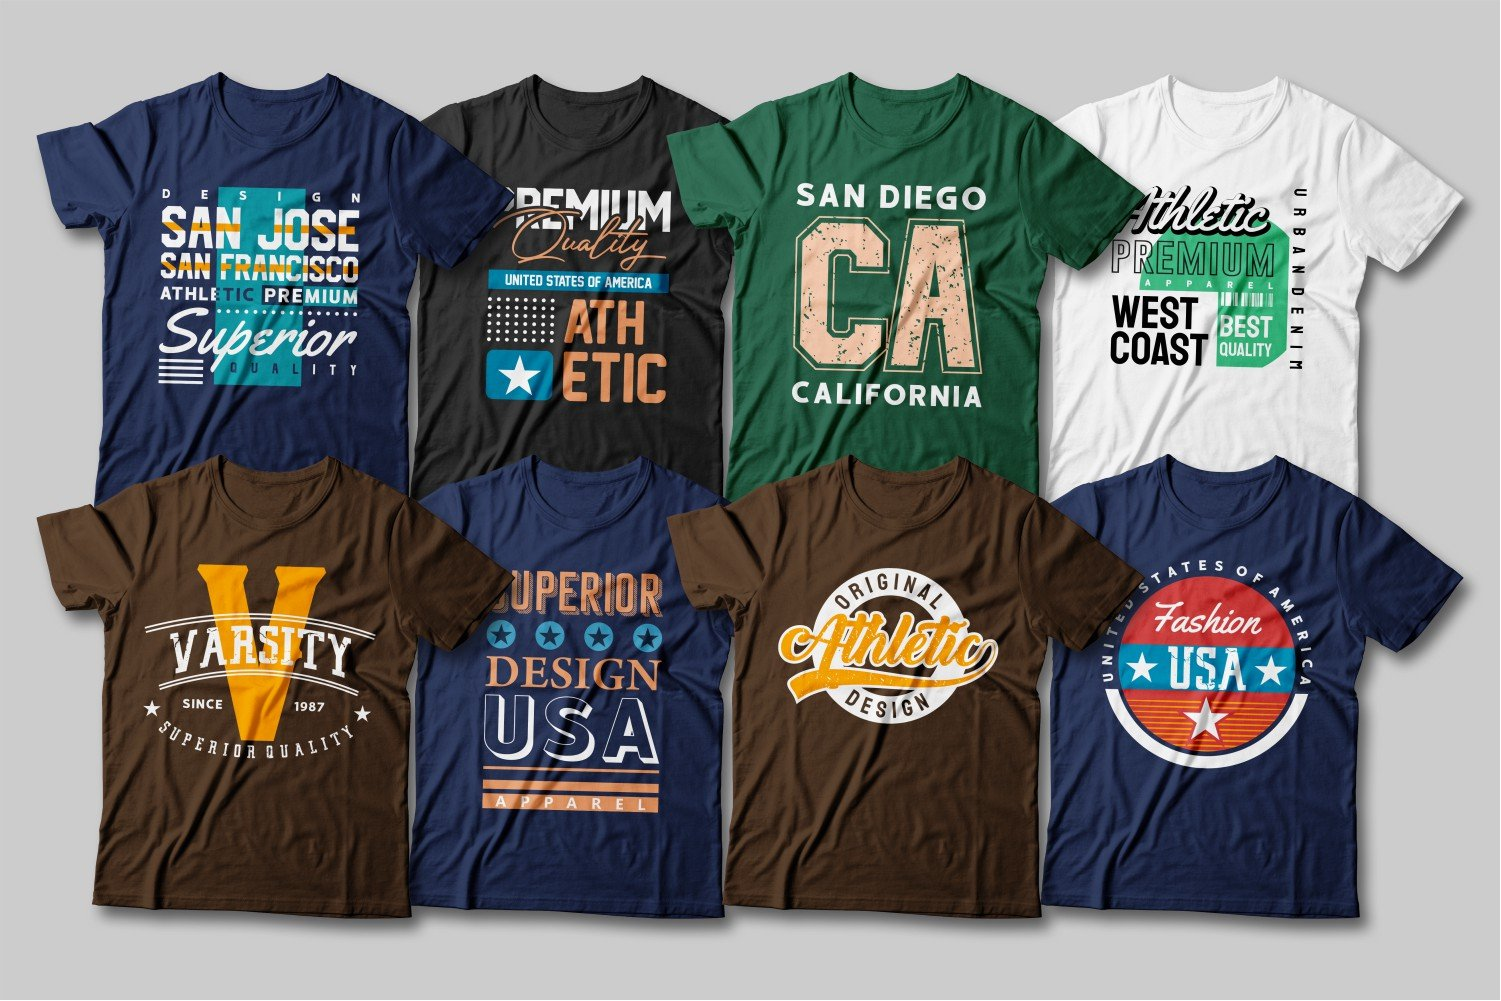 T-shirts in different colors and with different logos and fonts.